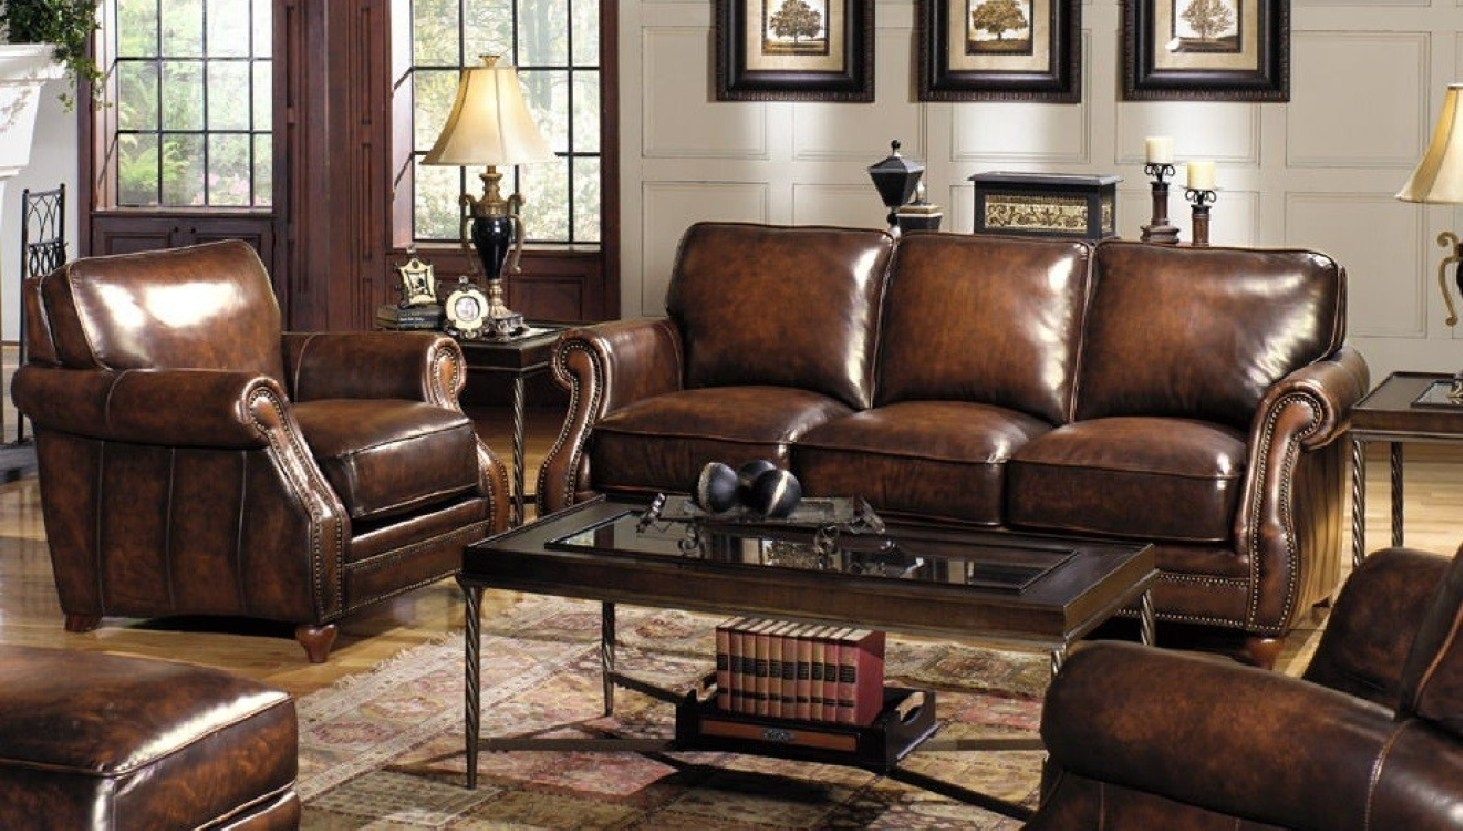 Sectional Sofas Kitchener 10 Best Kitchener Sectional Sofas Sofa Ideas